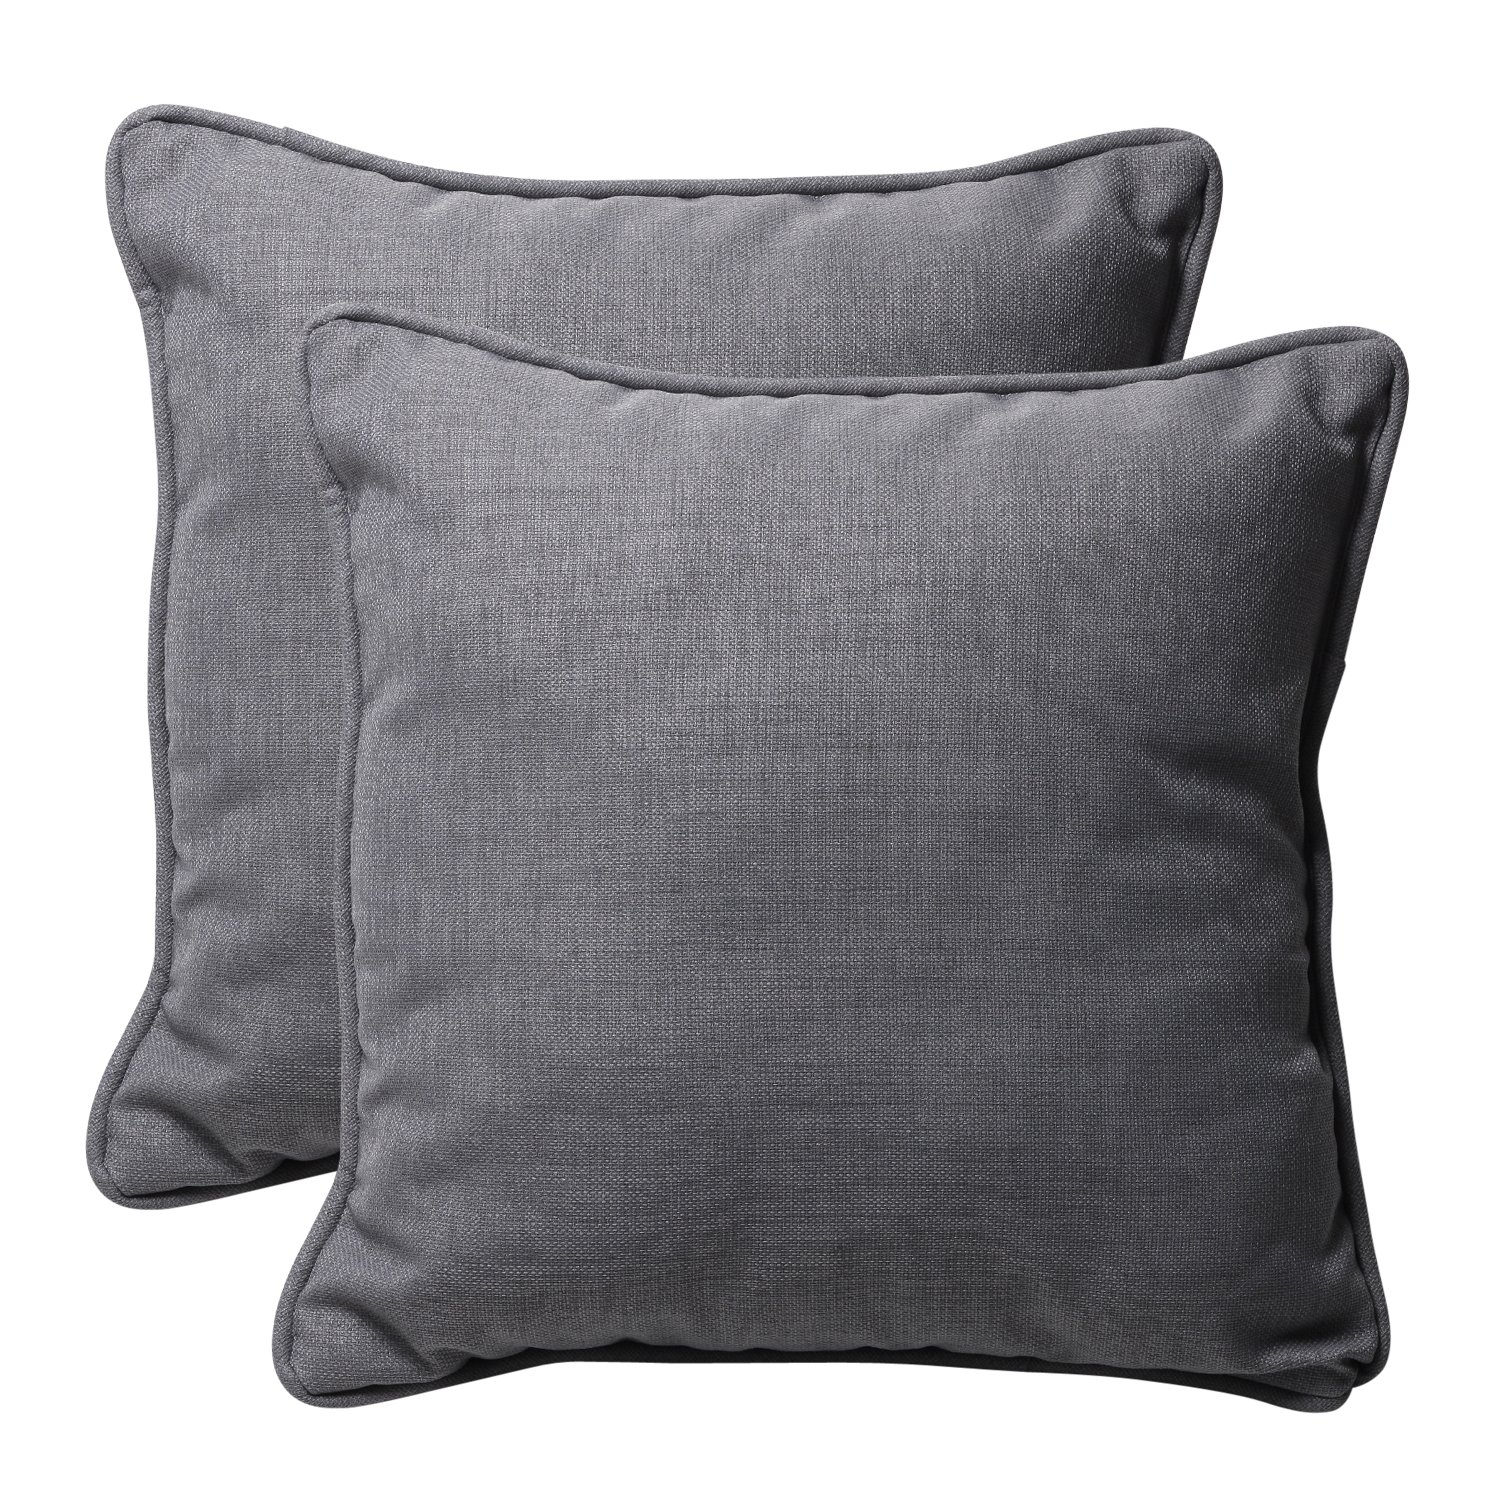 white mix decorative and throw brown gray pillows pillow match covers cushions